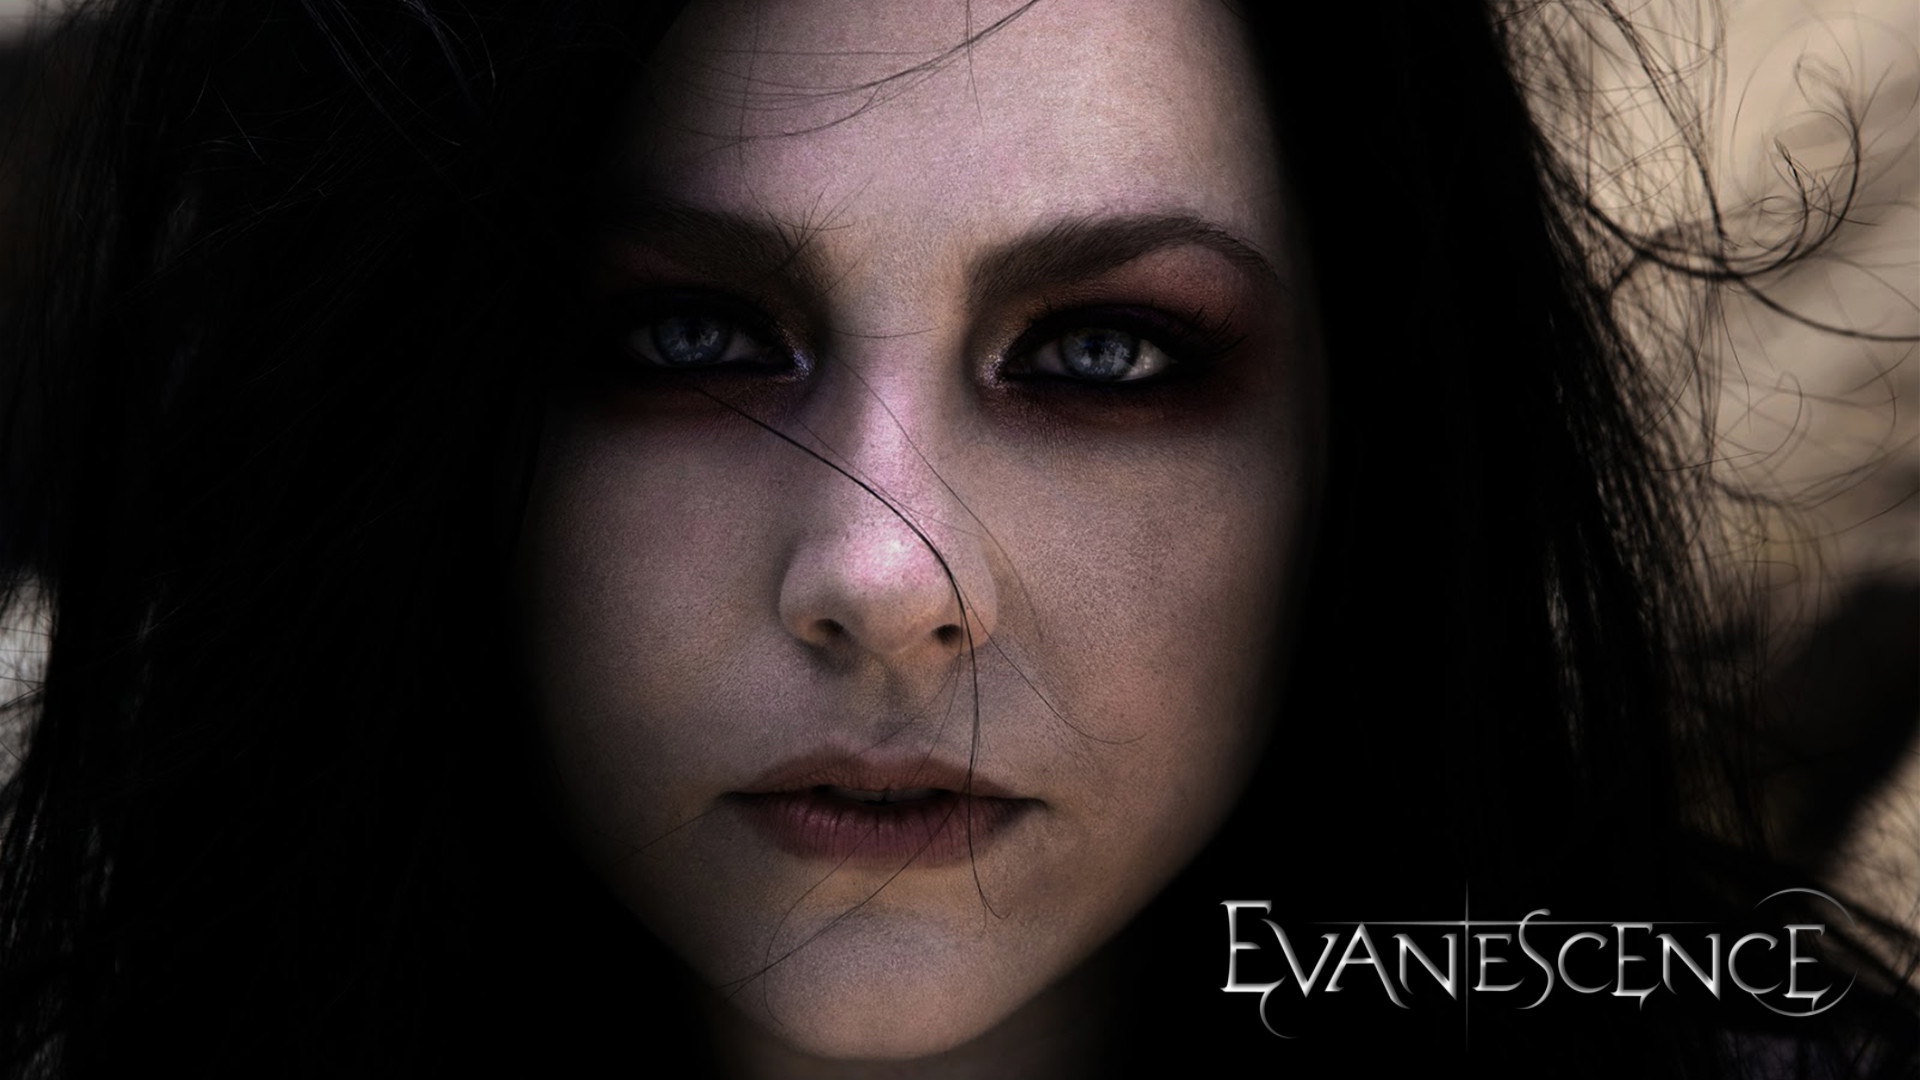 Amy Lee Evanescence Fresh Hd Wallpaper Pictures to pin on Pinterest